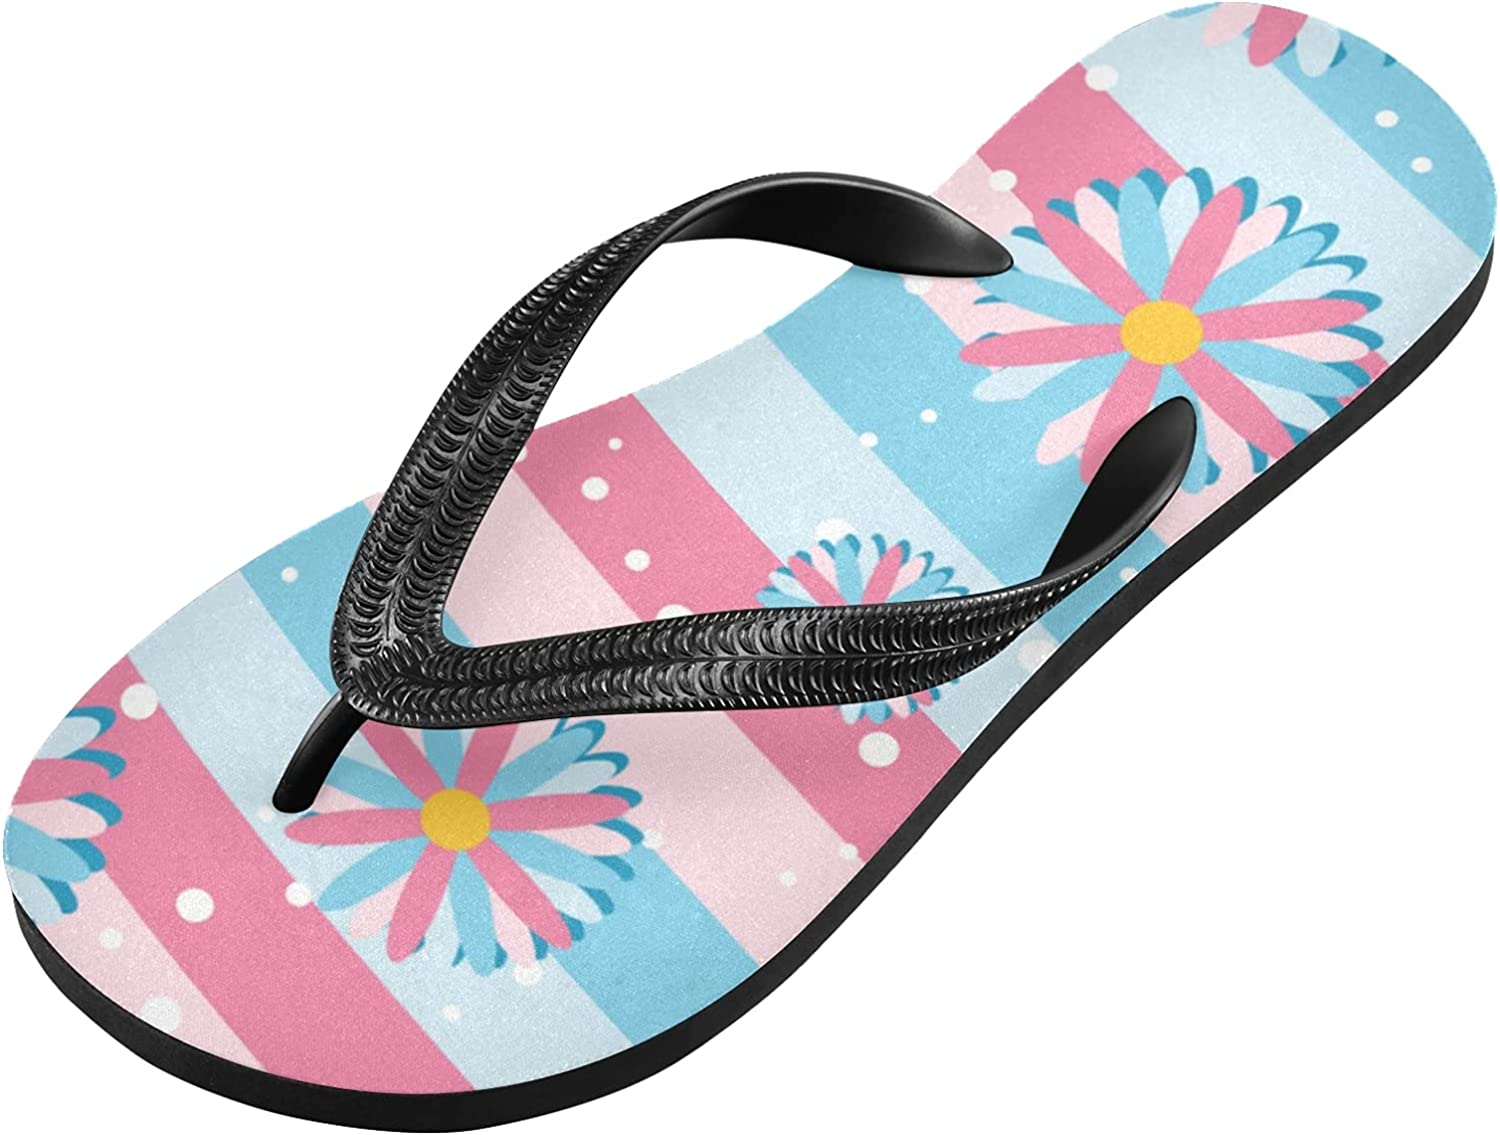 Linqin Flip Flops Slippers for Women/Men Outdoor Summer Beach Sandals Shower Shoes with Blue And Pink Flowers Element